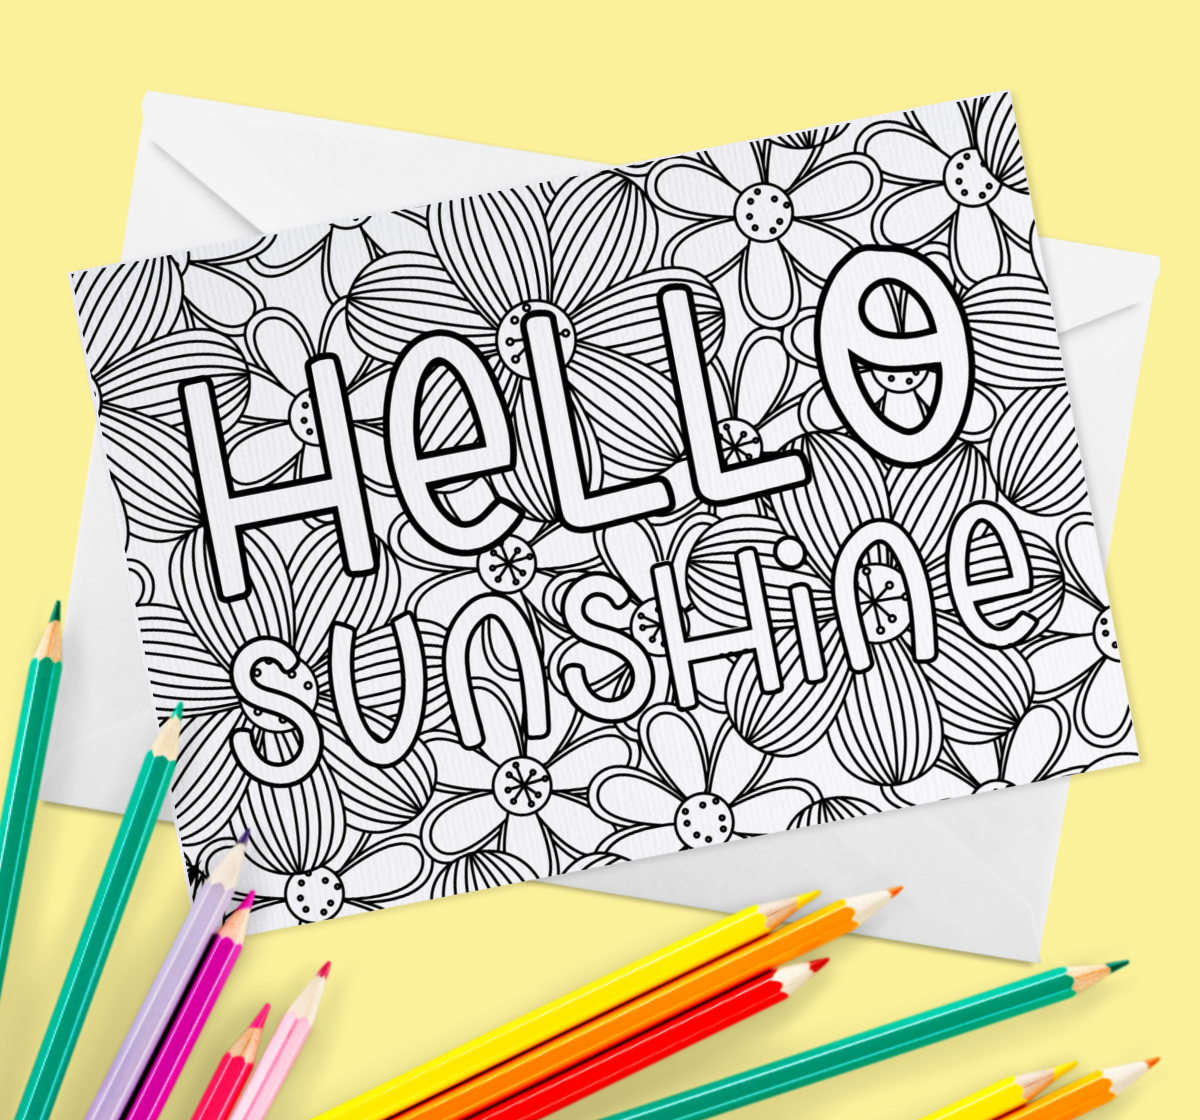 https://www.happygoluckyblog.com/wp-content/uploads/2020/04/sunshine-card-1.png